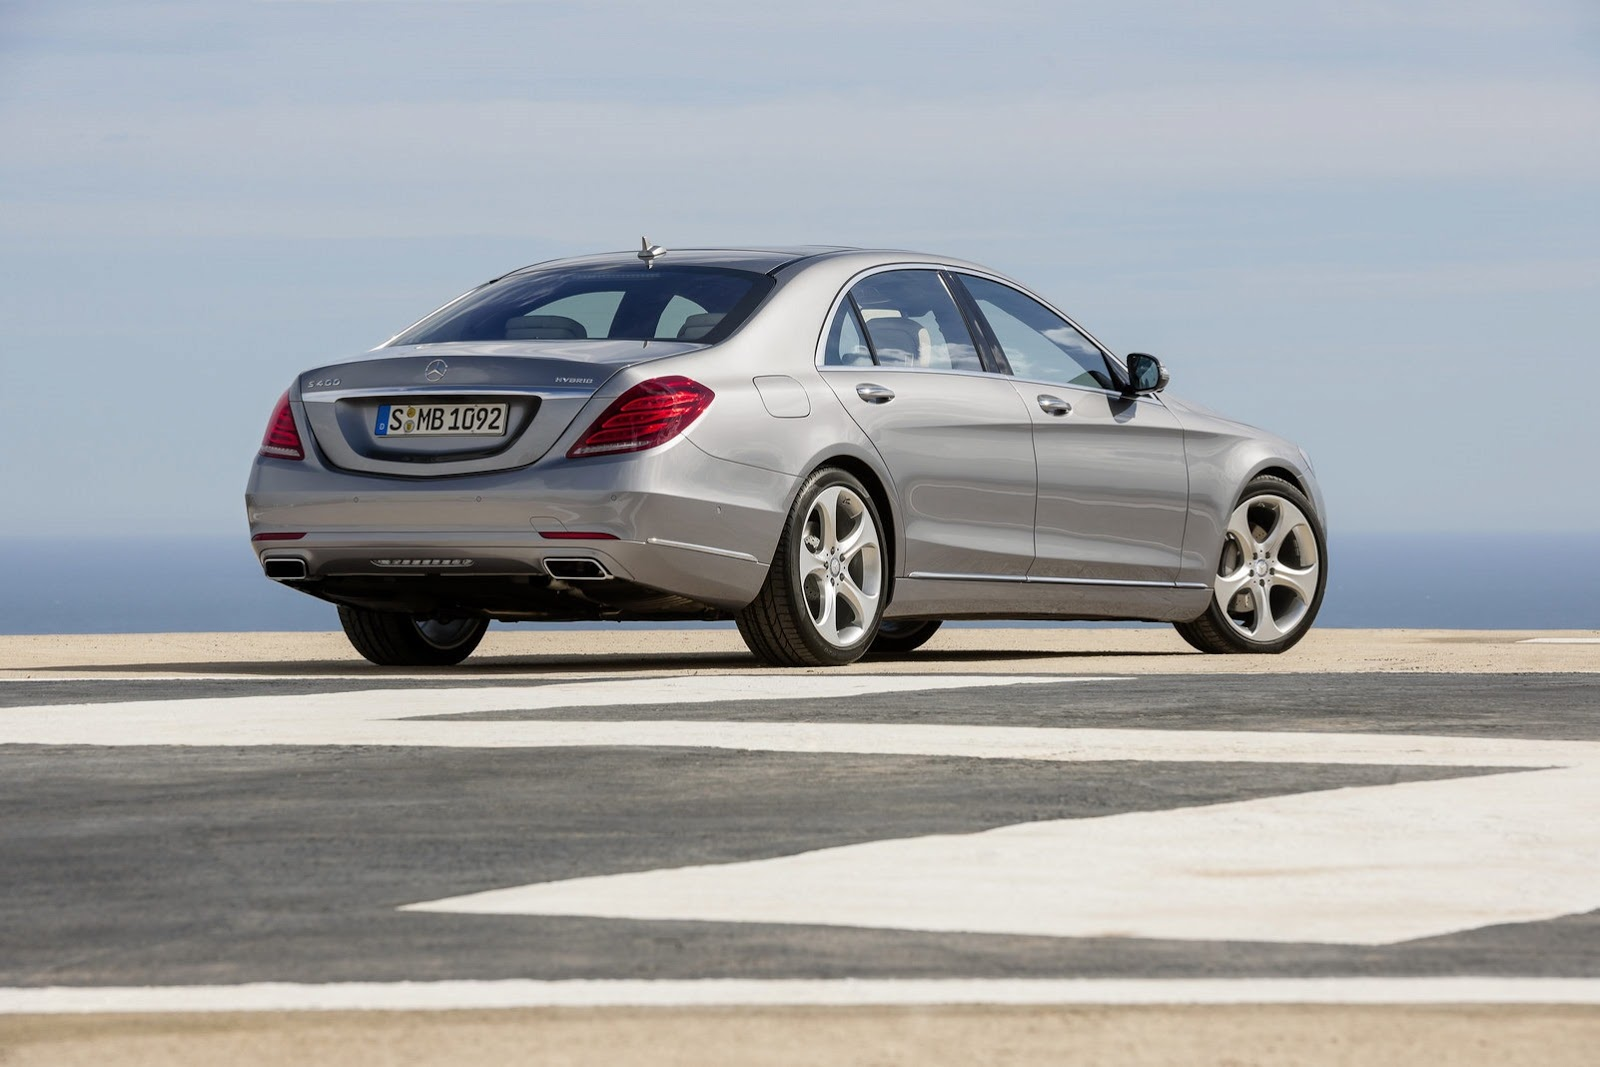 2014 Mercedes Benz S-Class - SMADE MEDIA (42)